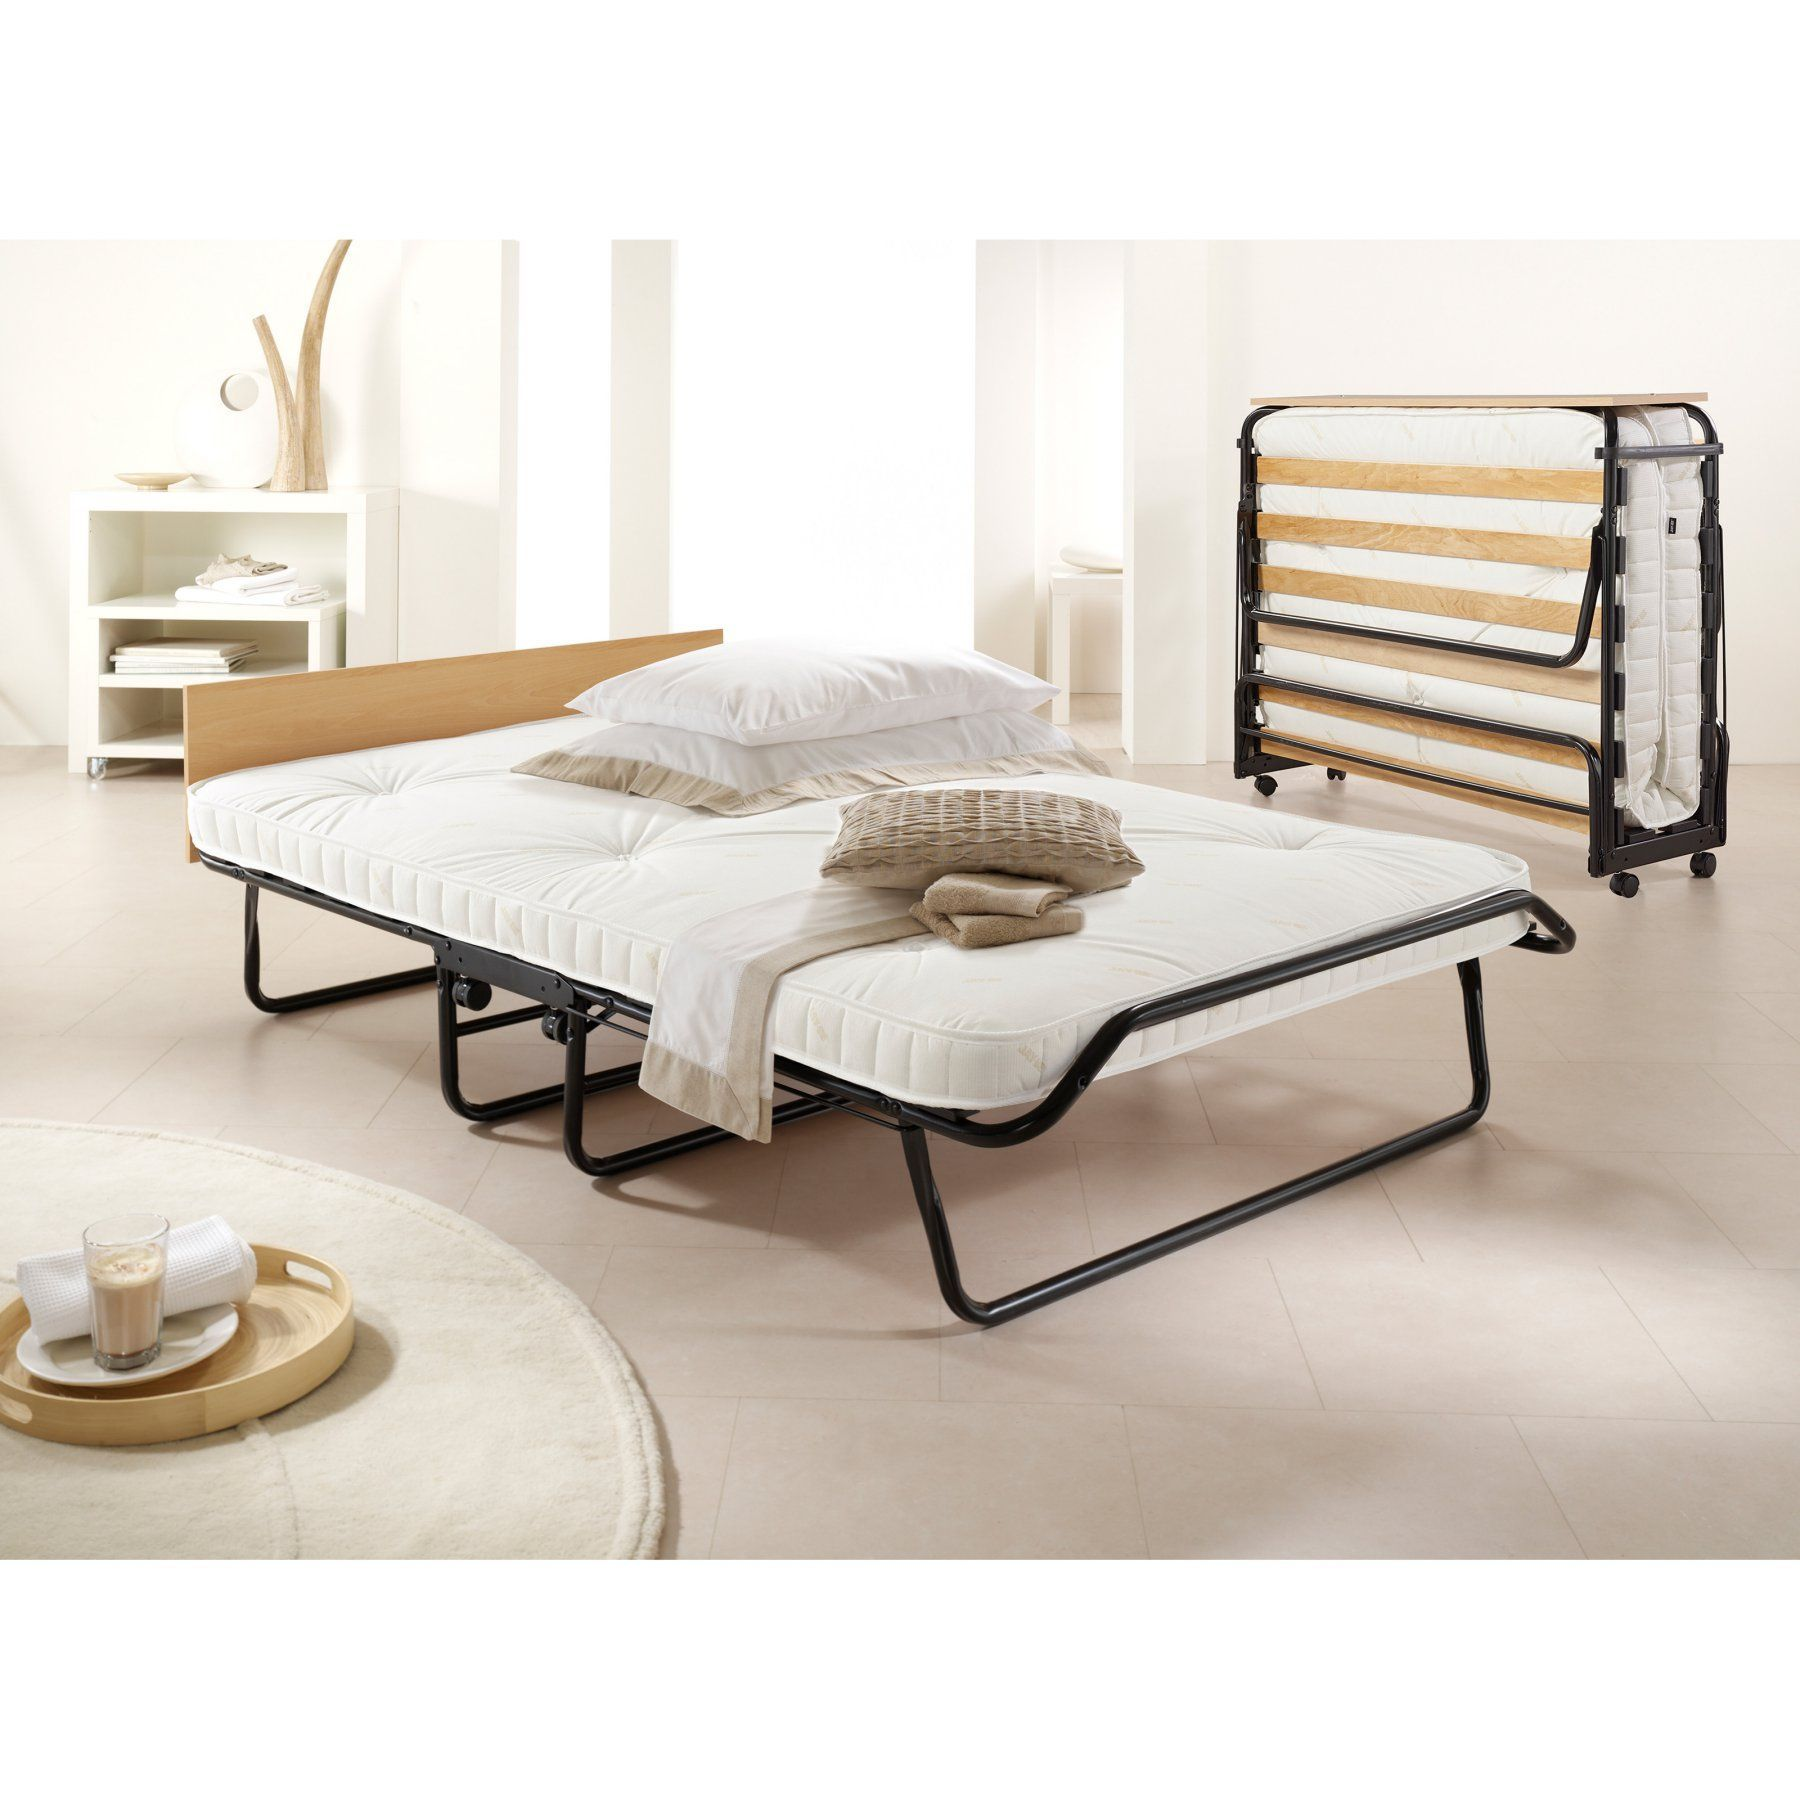 Jay Be Contour Folding Bed With Pocket Spring Mattress